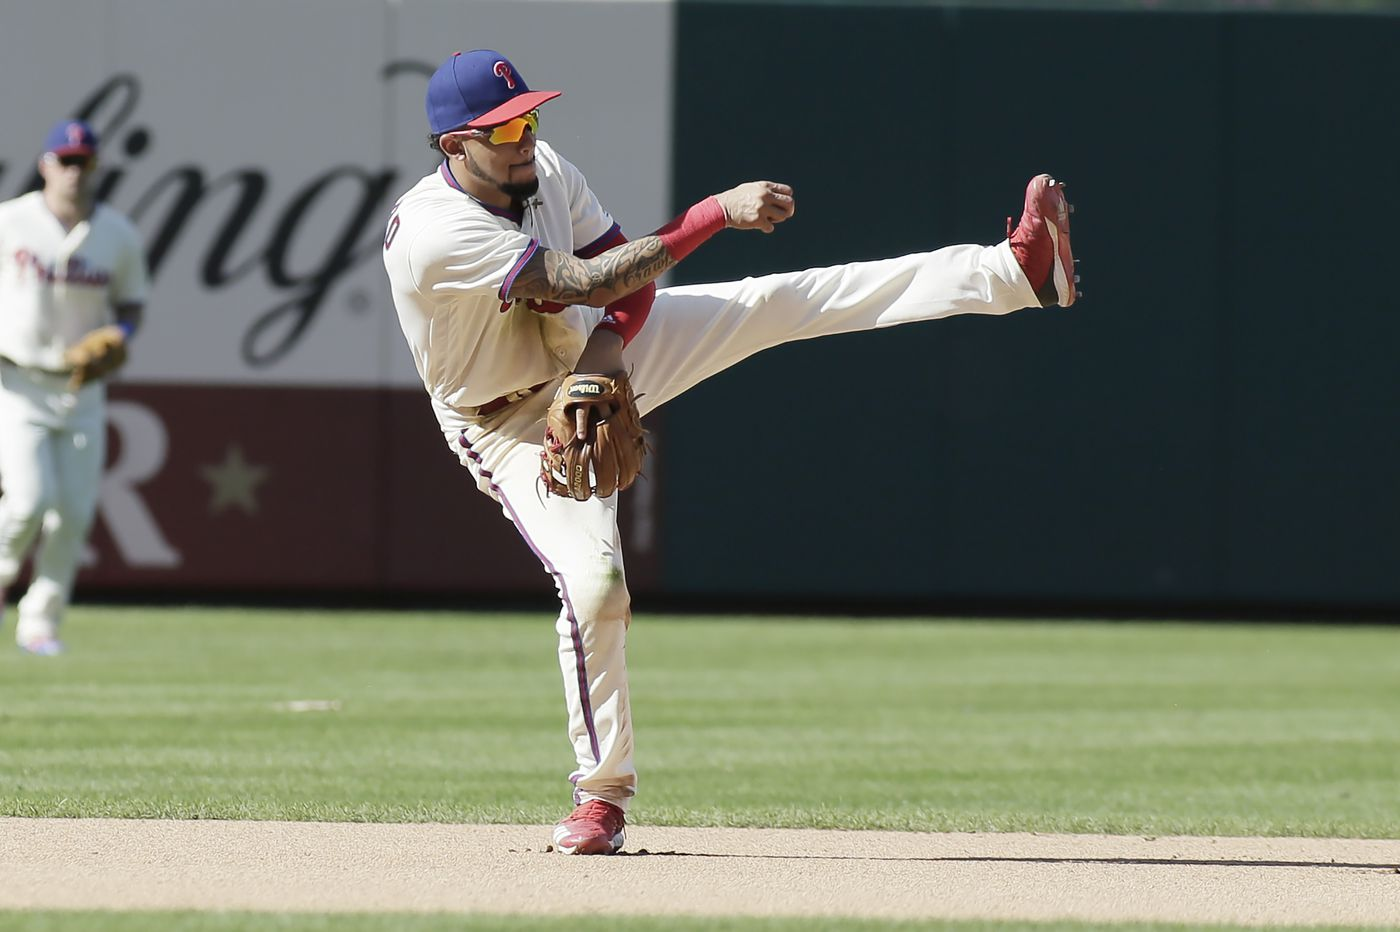 Phillies' Asdrubal Cabrera's injury should open time for shortstop J.P. Crawford